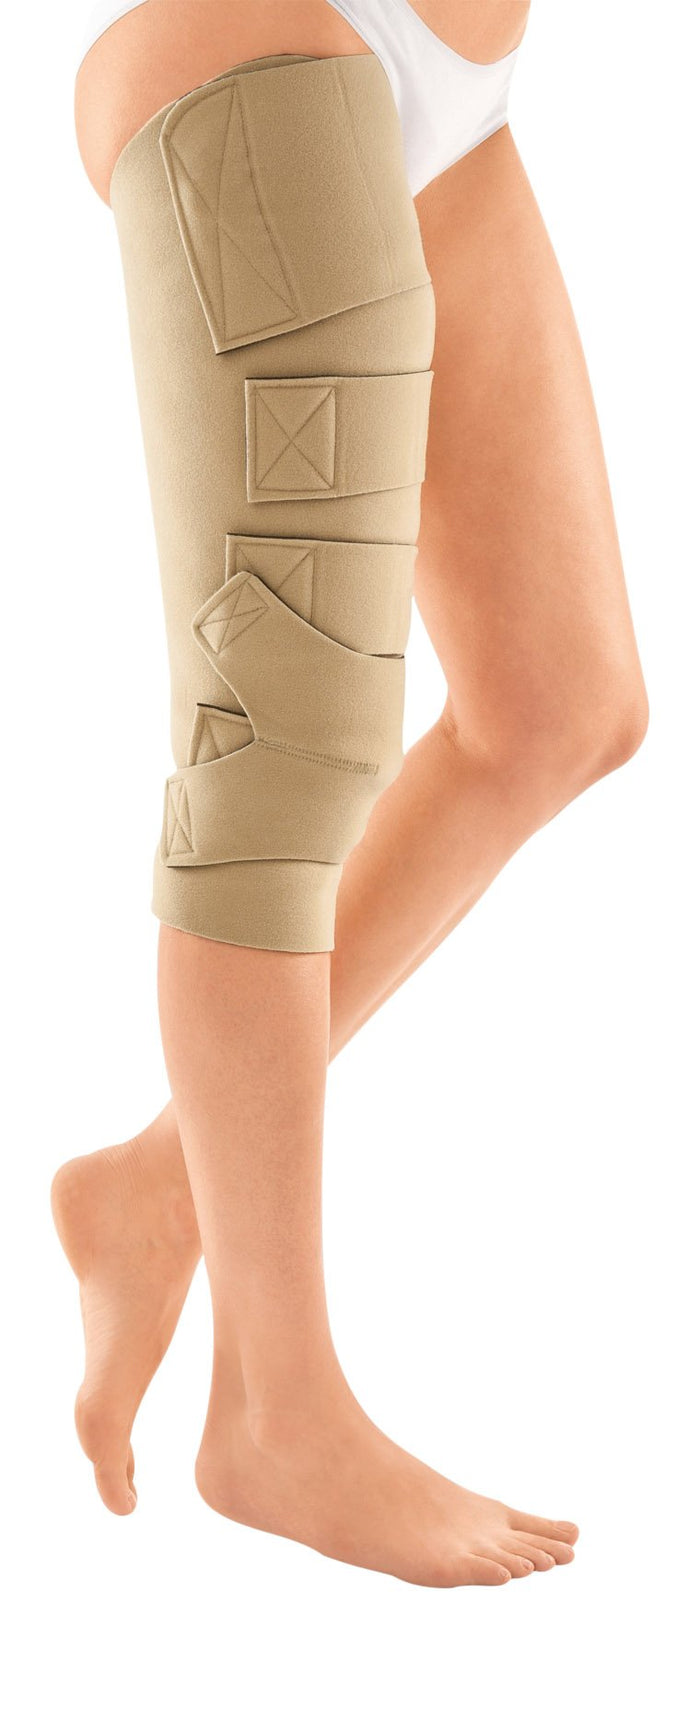 circaid juxtafit essentials Upper Leg with Knee